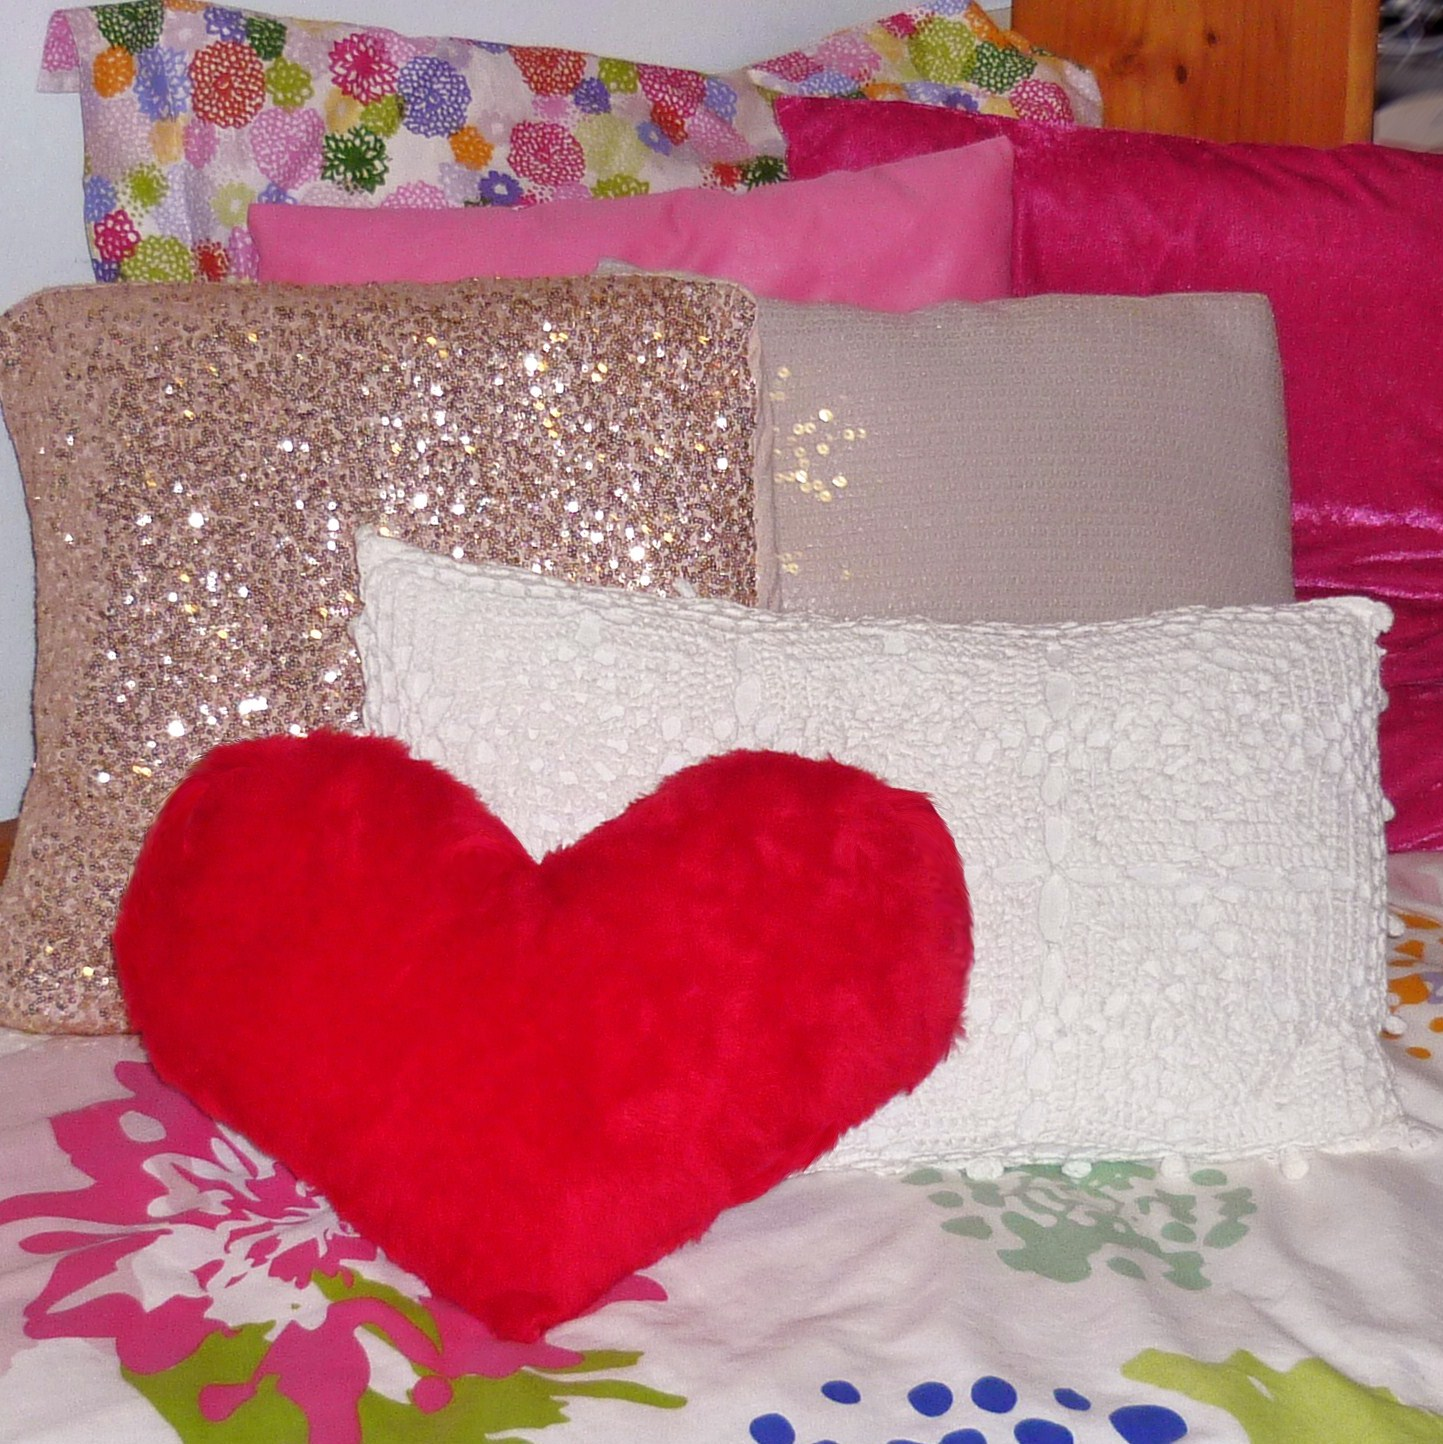 DIY ROOM DECOR - No sew heart pillow! (V-day decor & gift idea)